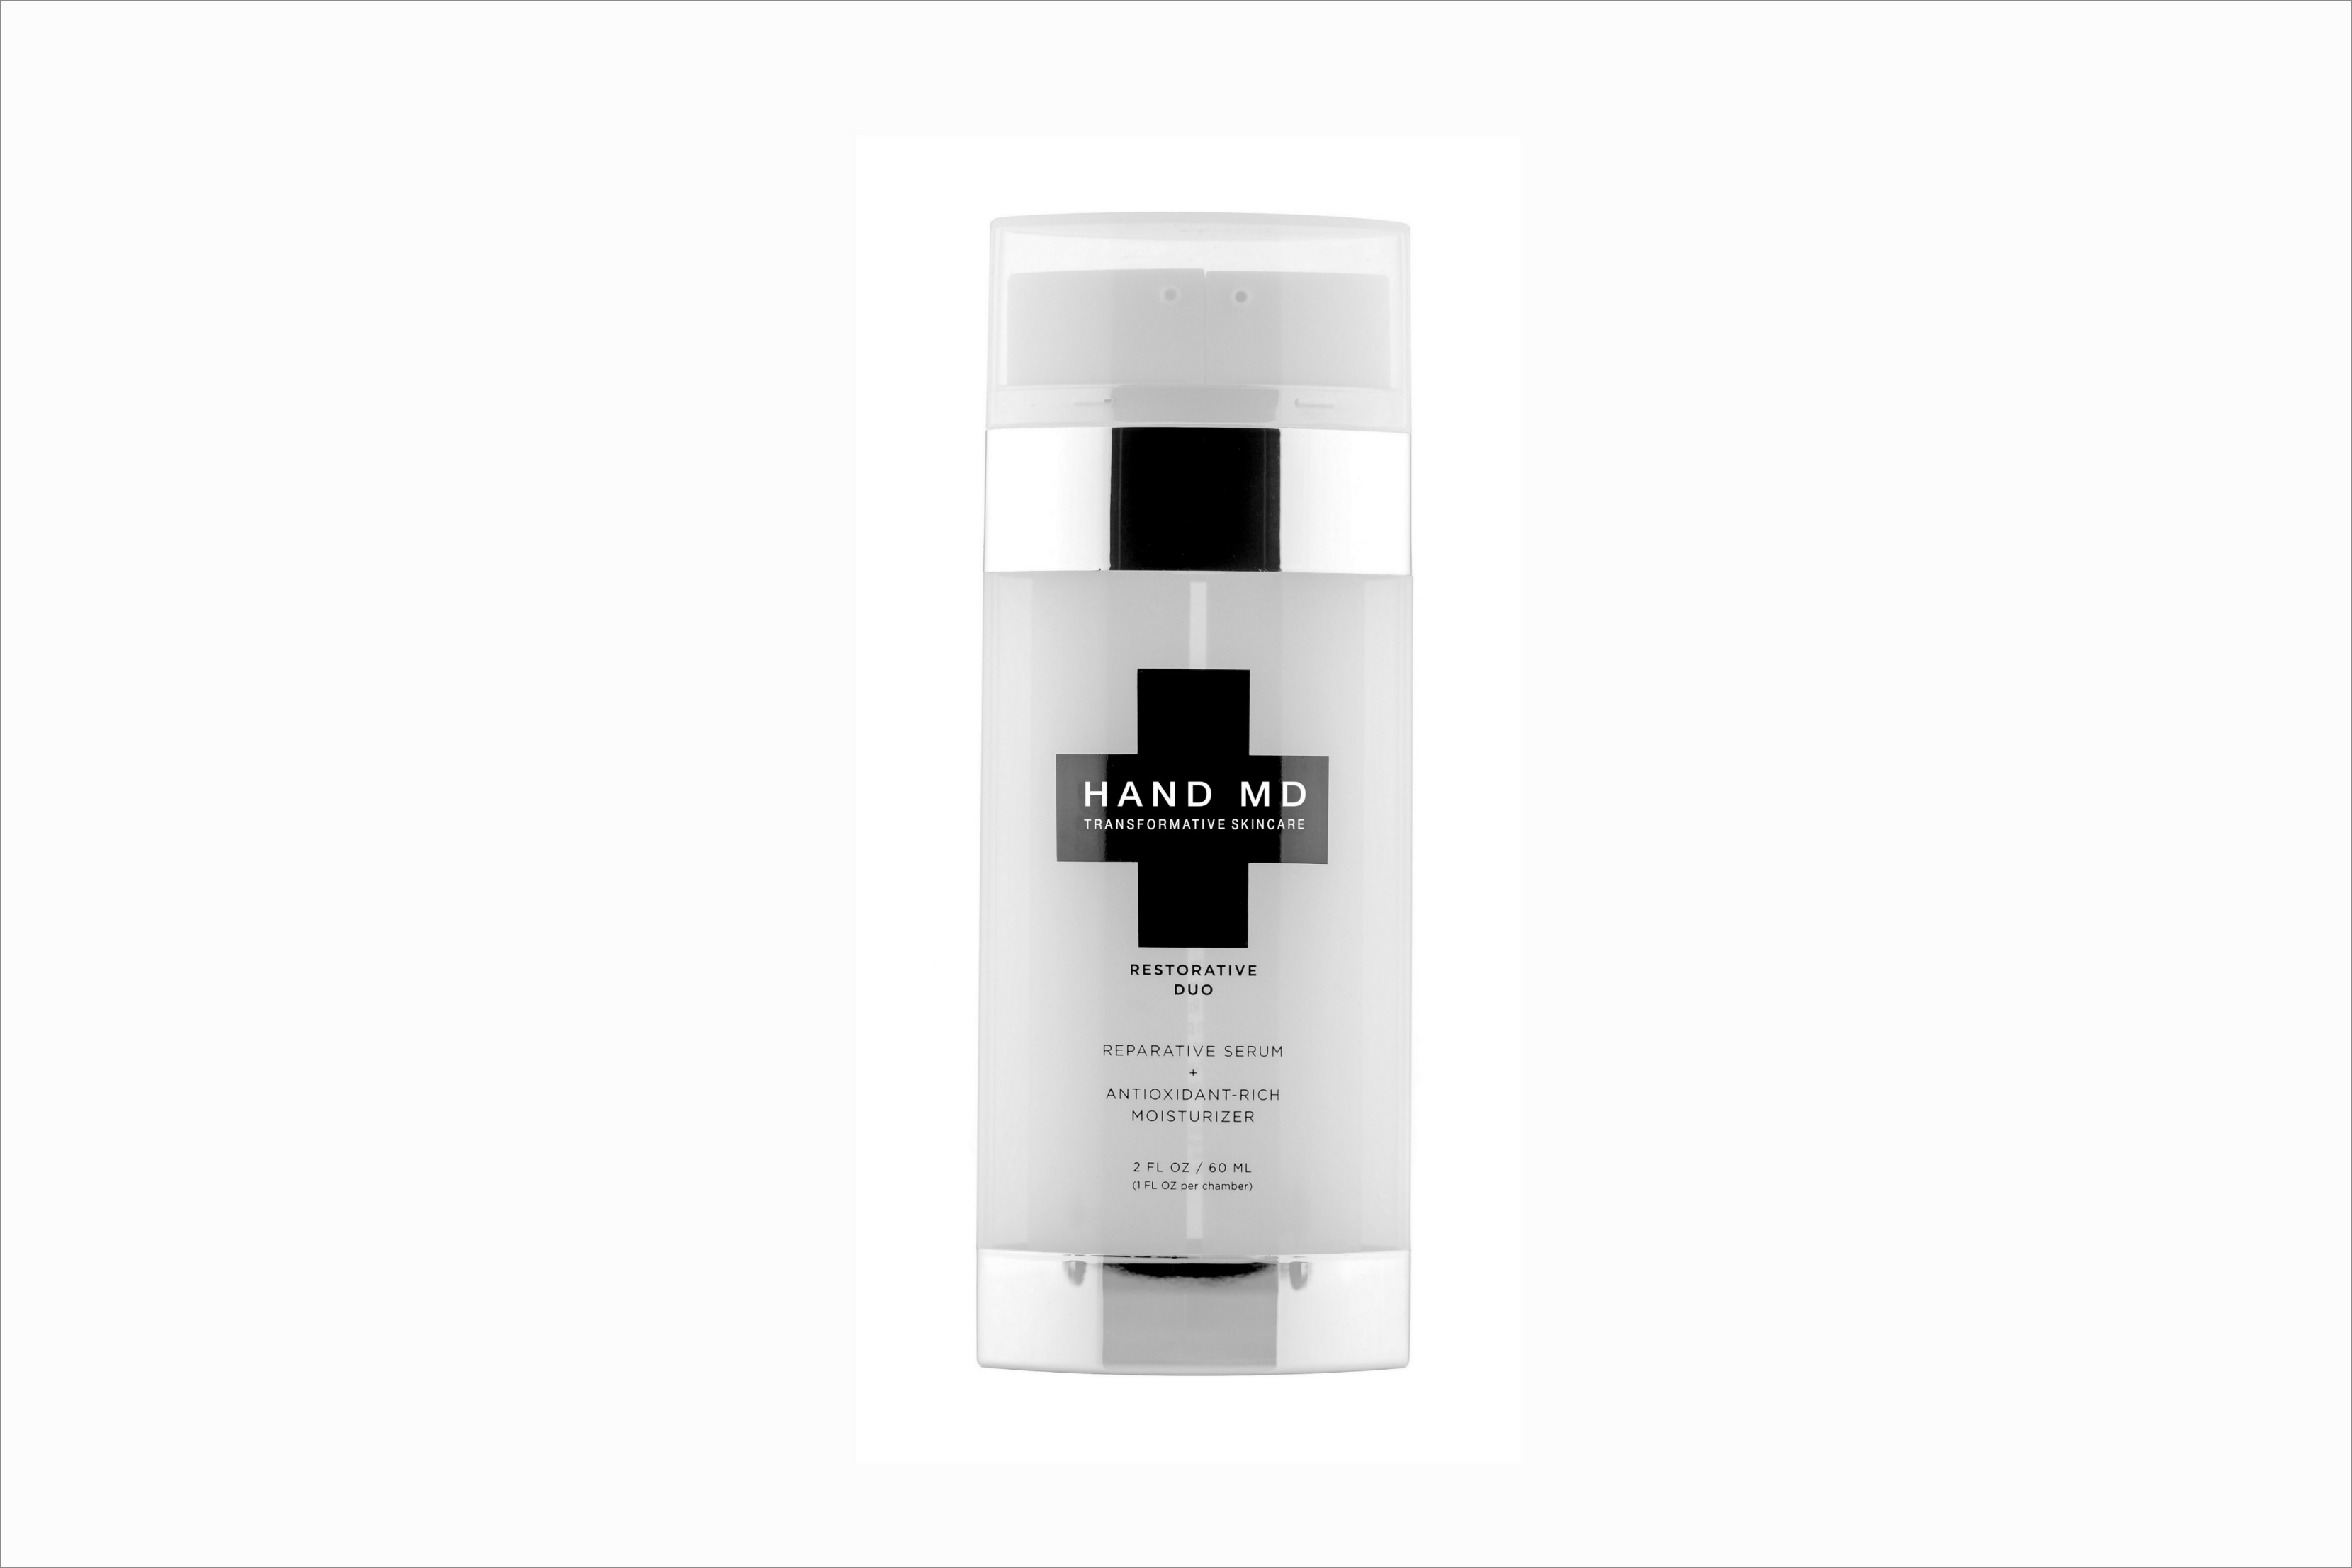 Hand MD restorative duo beauty product